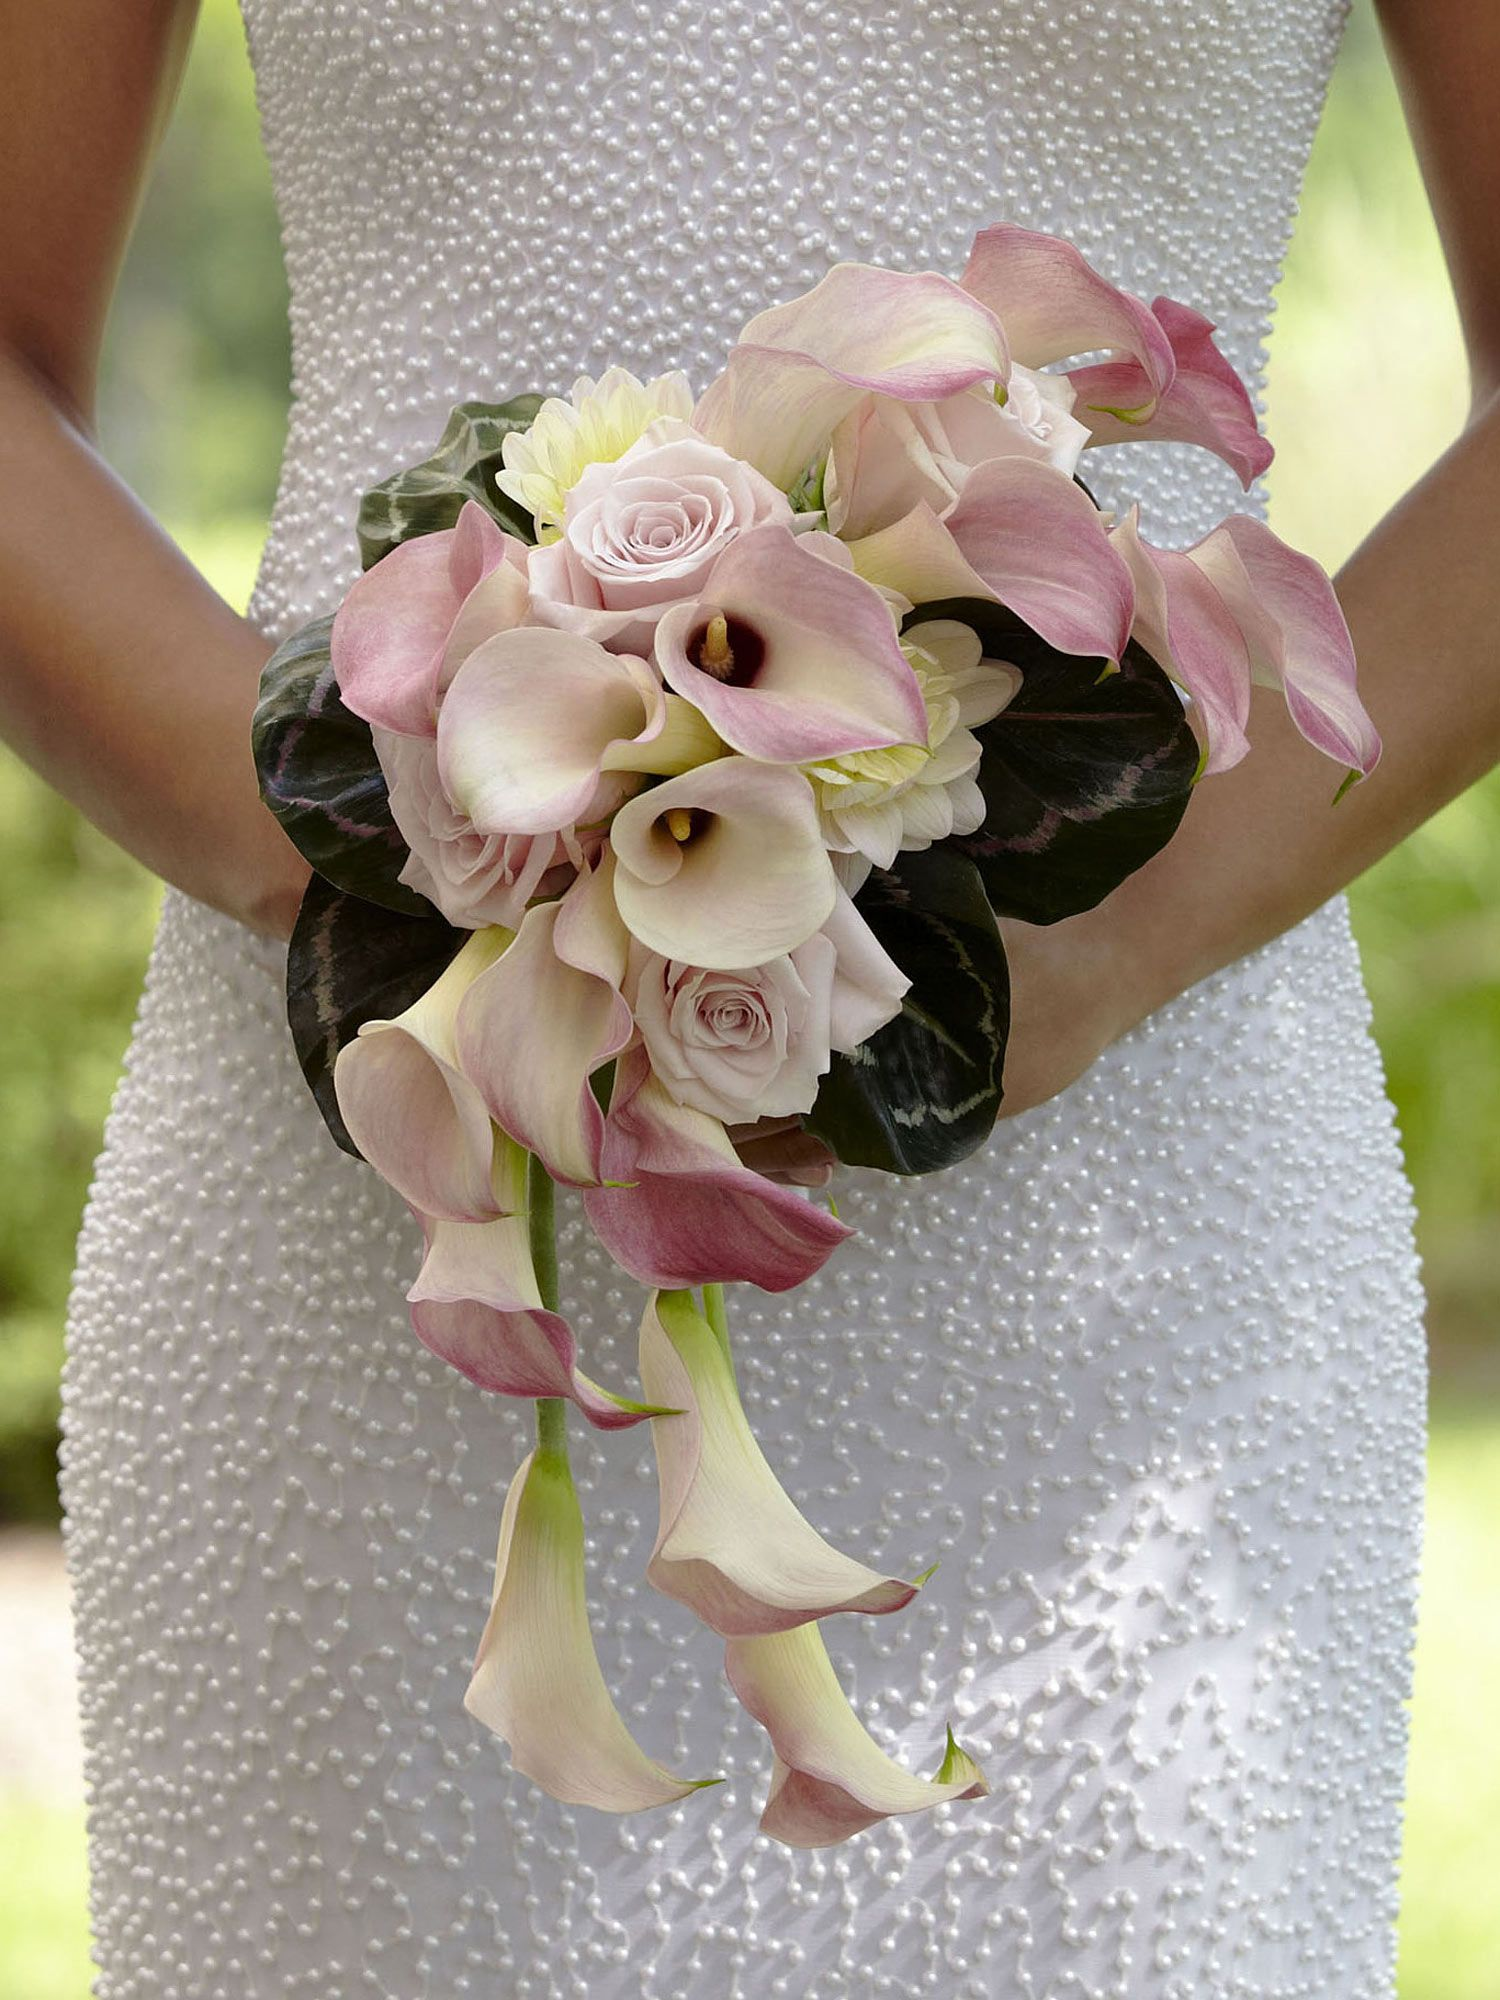 A simple yet incredibly beautiful bouquet, which exudes